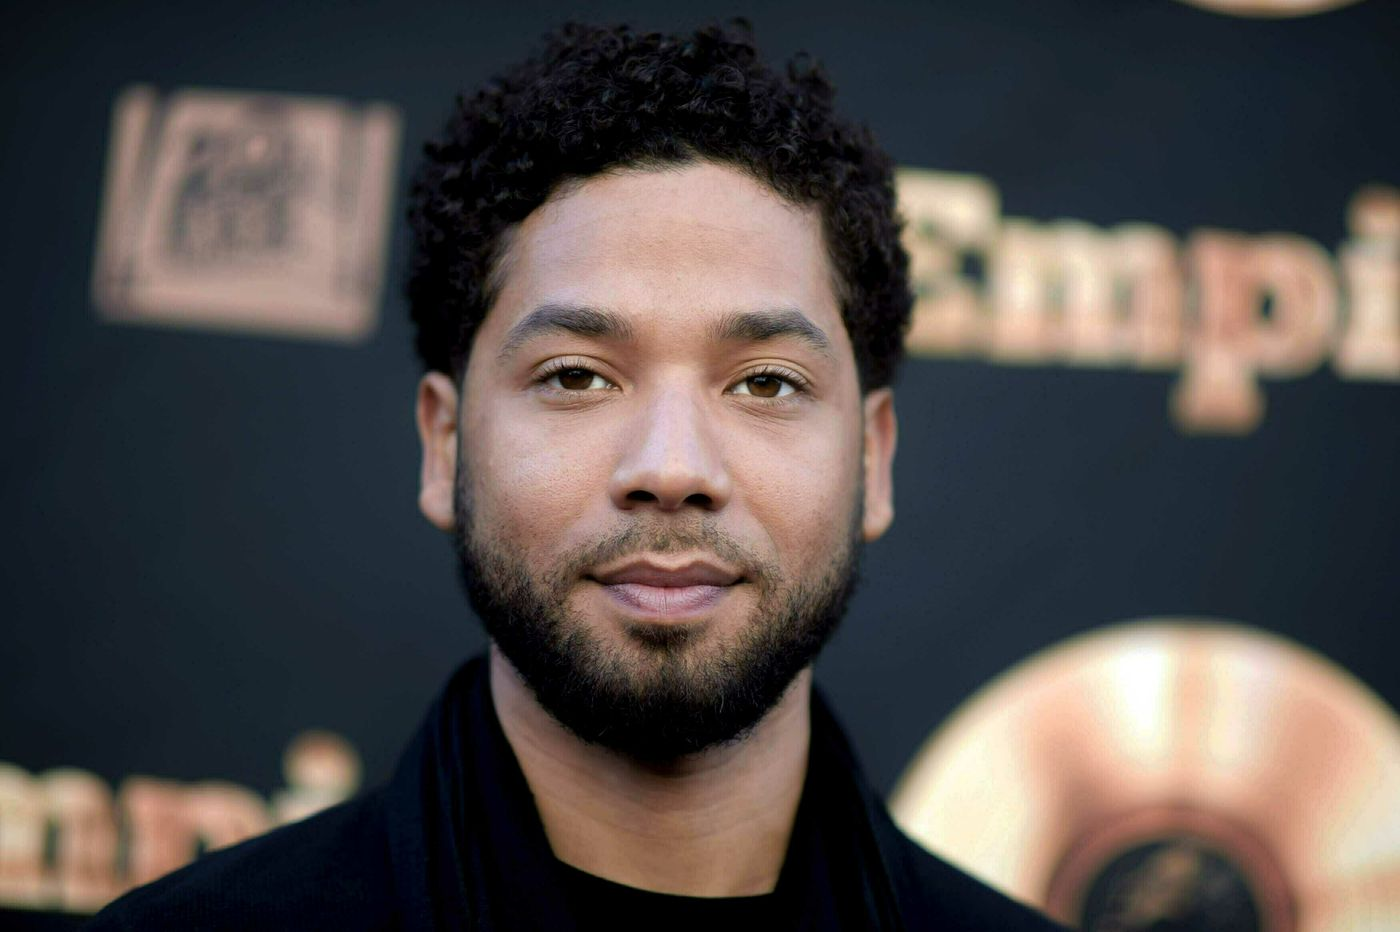 Jussie Smollett hands himself over to the police